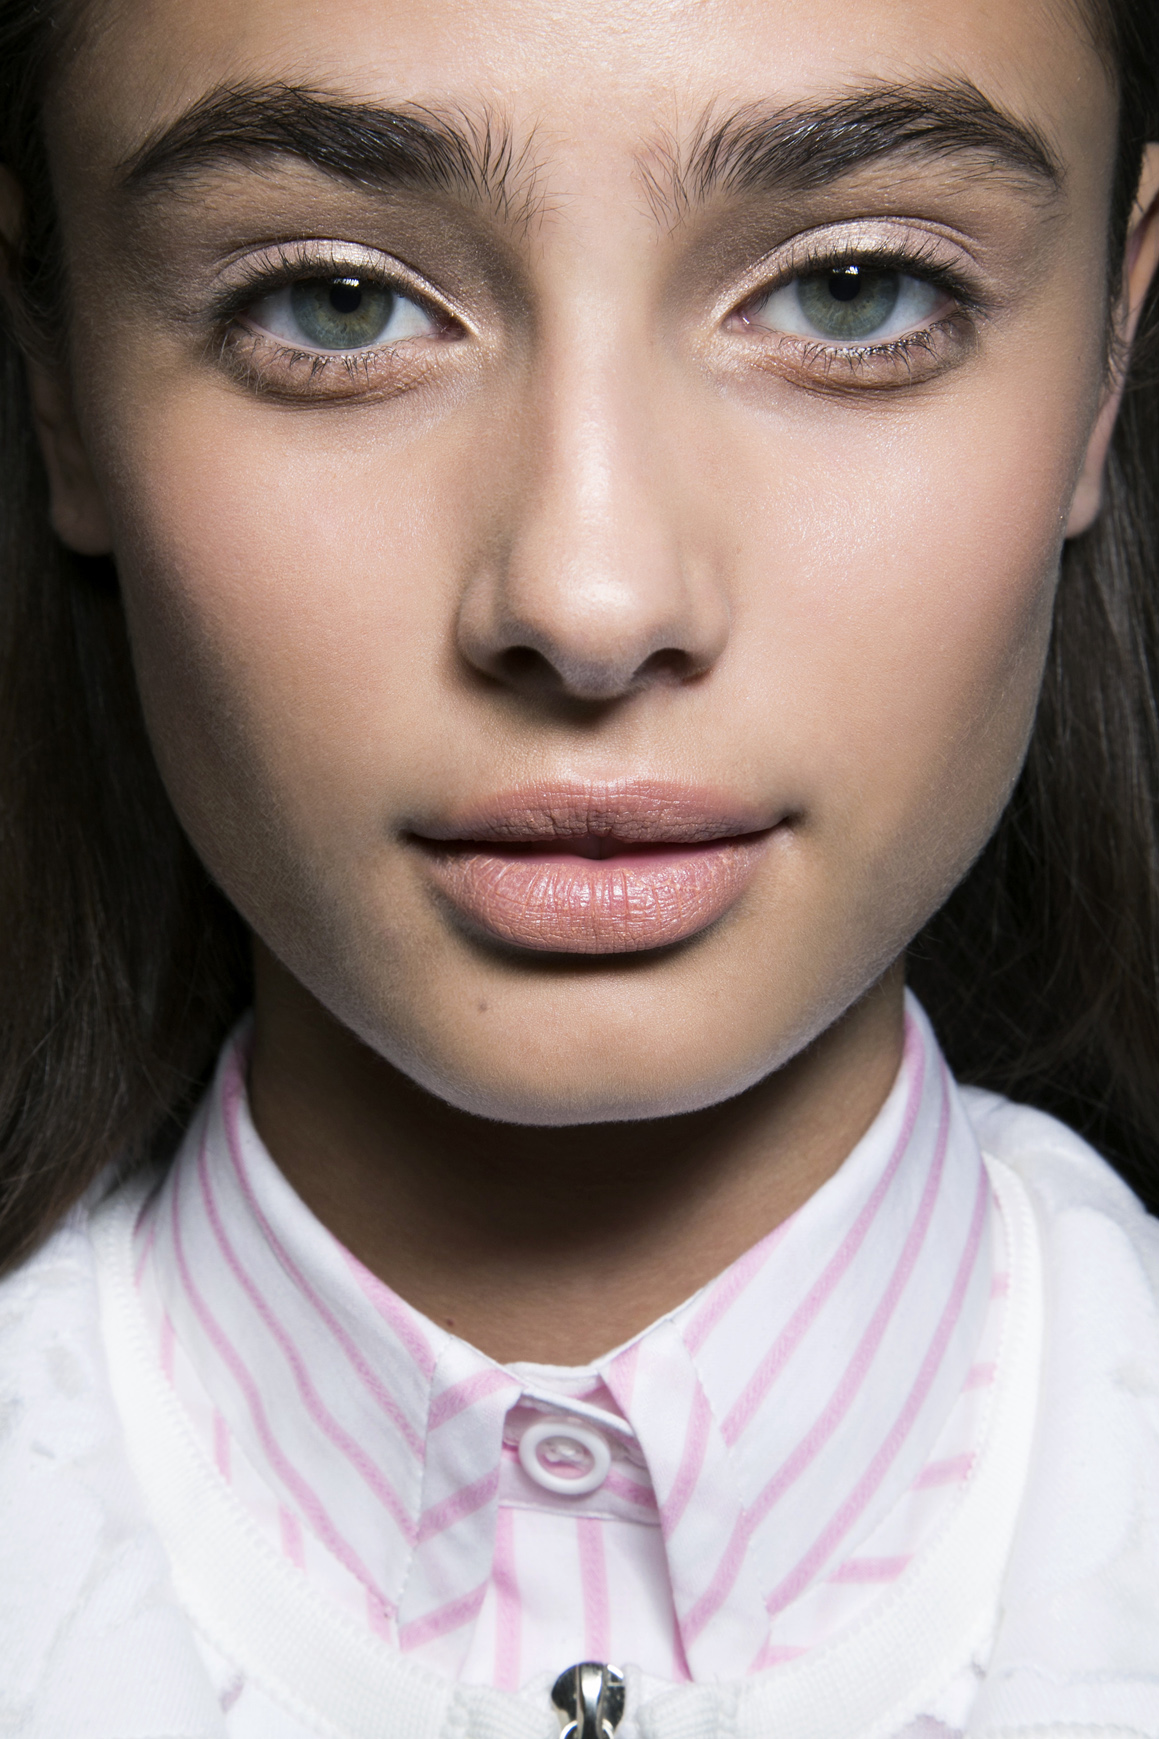 Eyebrow Wax What To Know Before You Go Stylecaster